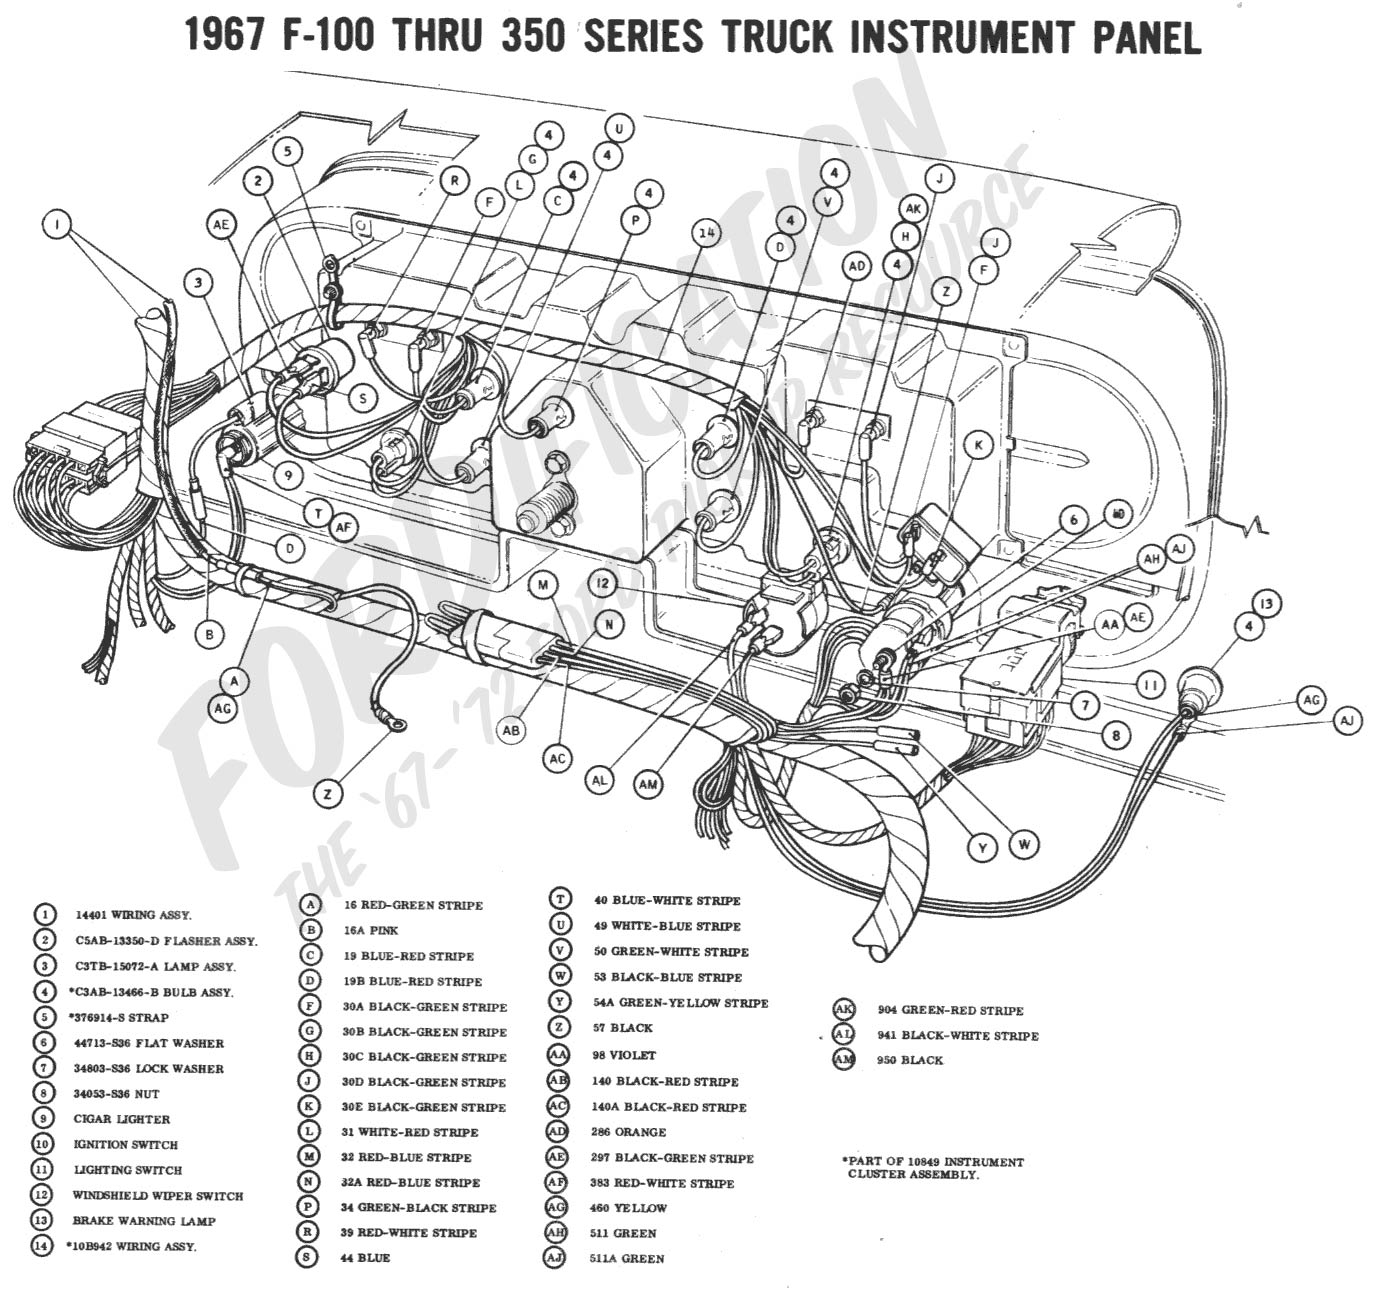 wiring 1967instrumentpanel ford truck technical drawings and schematics section h wiring 1967 mustang instrument cluster wiring diagram at readyjetset.co